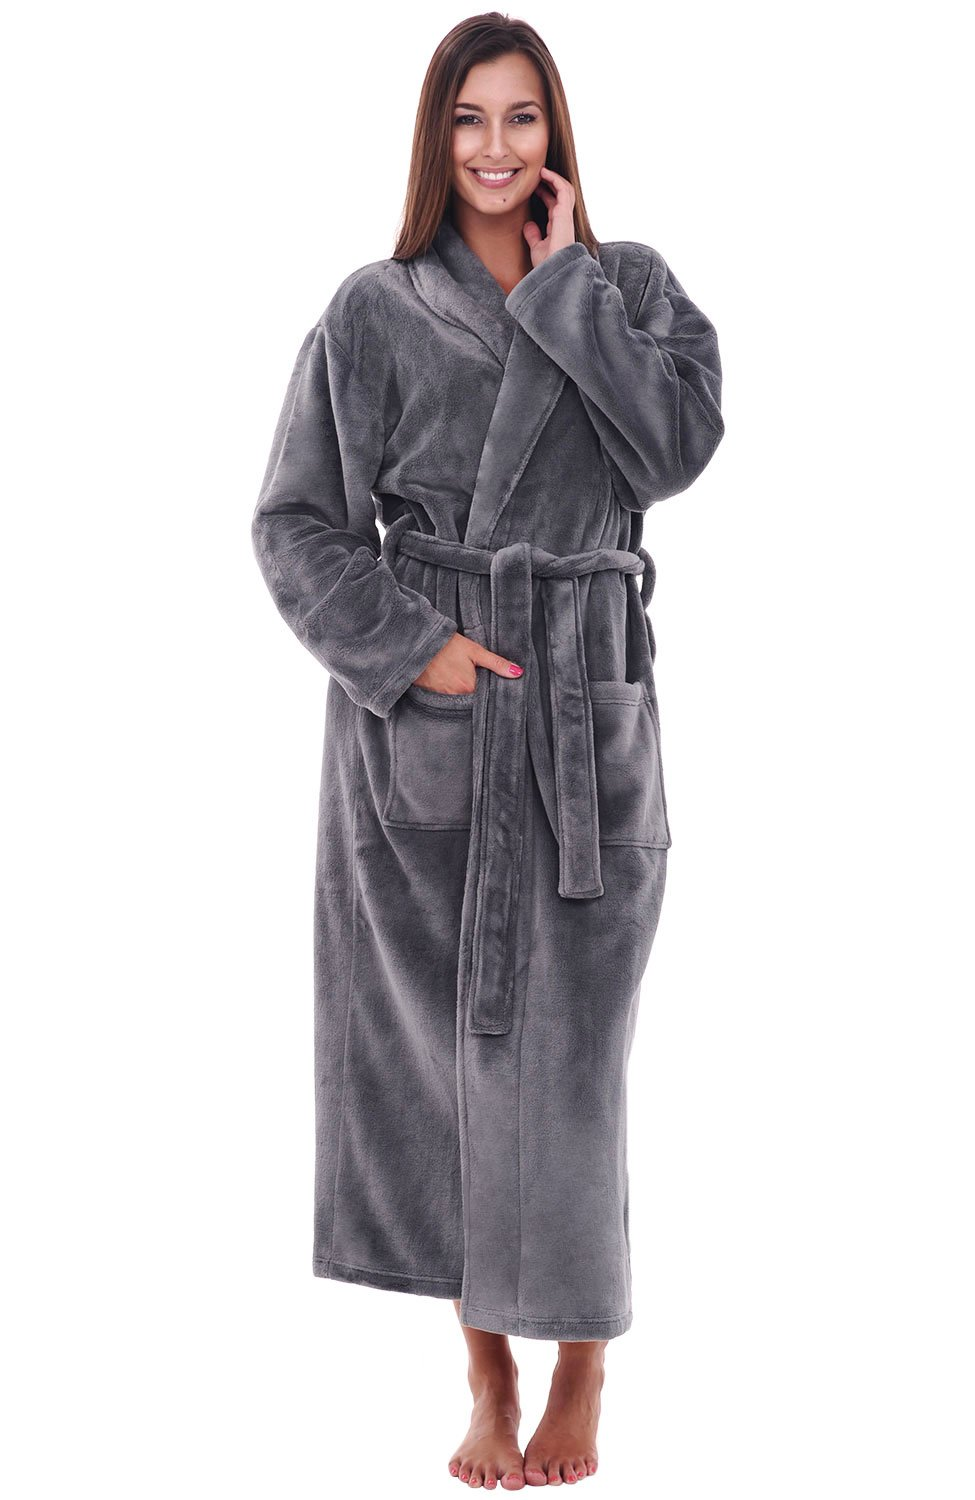 c8df971fb1 Best Rated in Women s Robes   Helpful Customer Reviews - Amazon.com